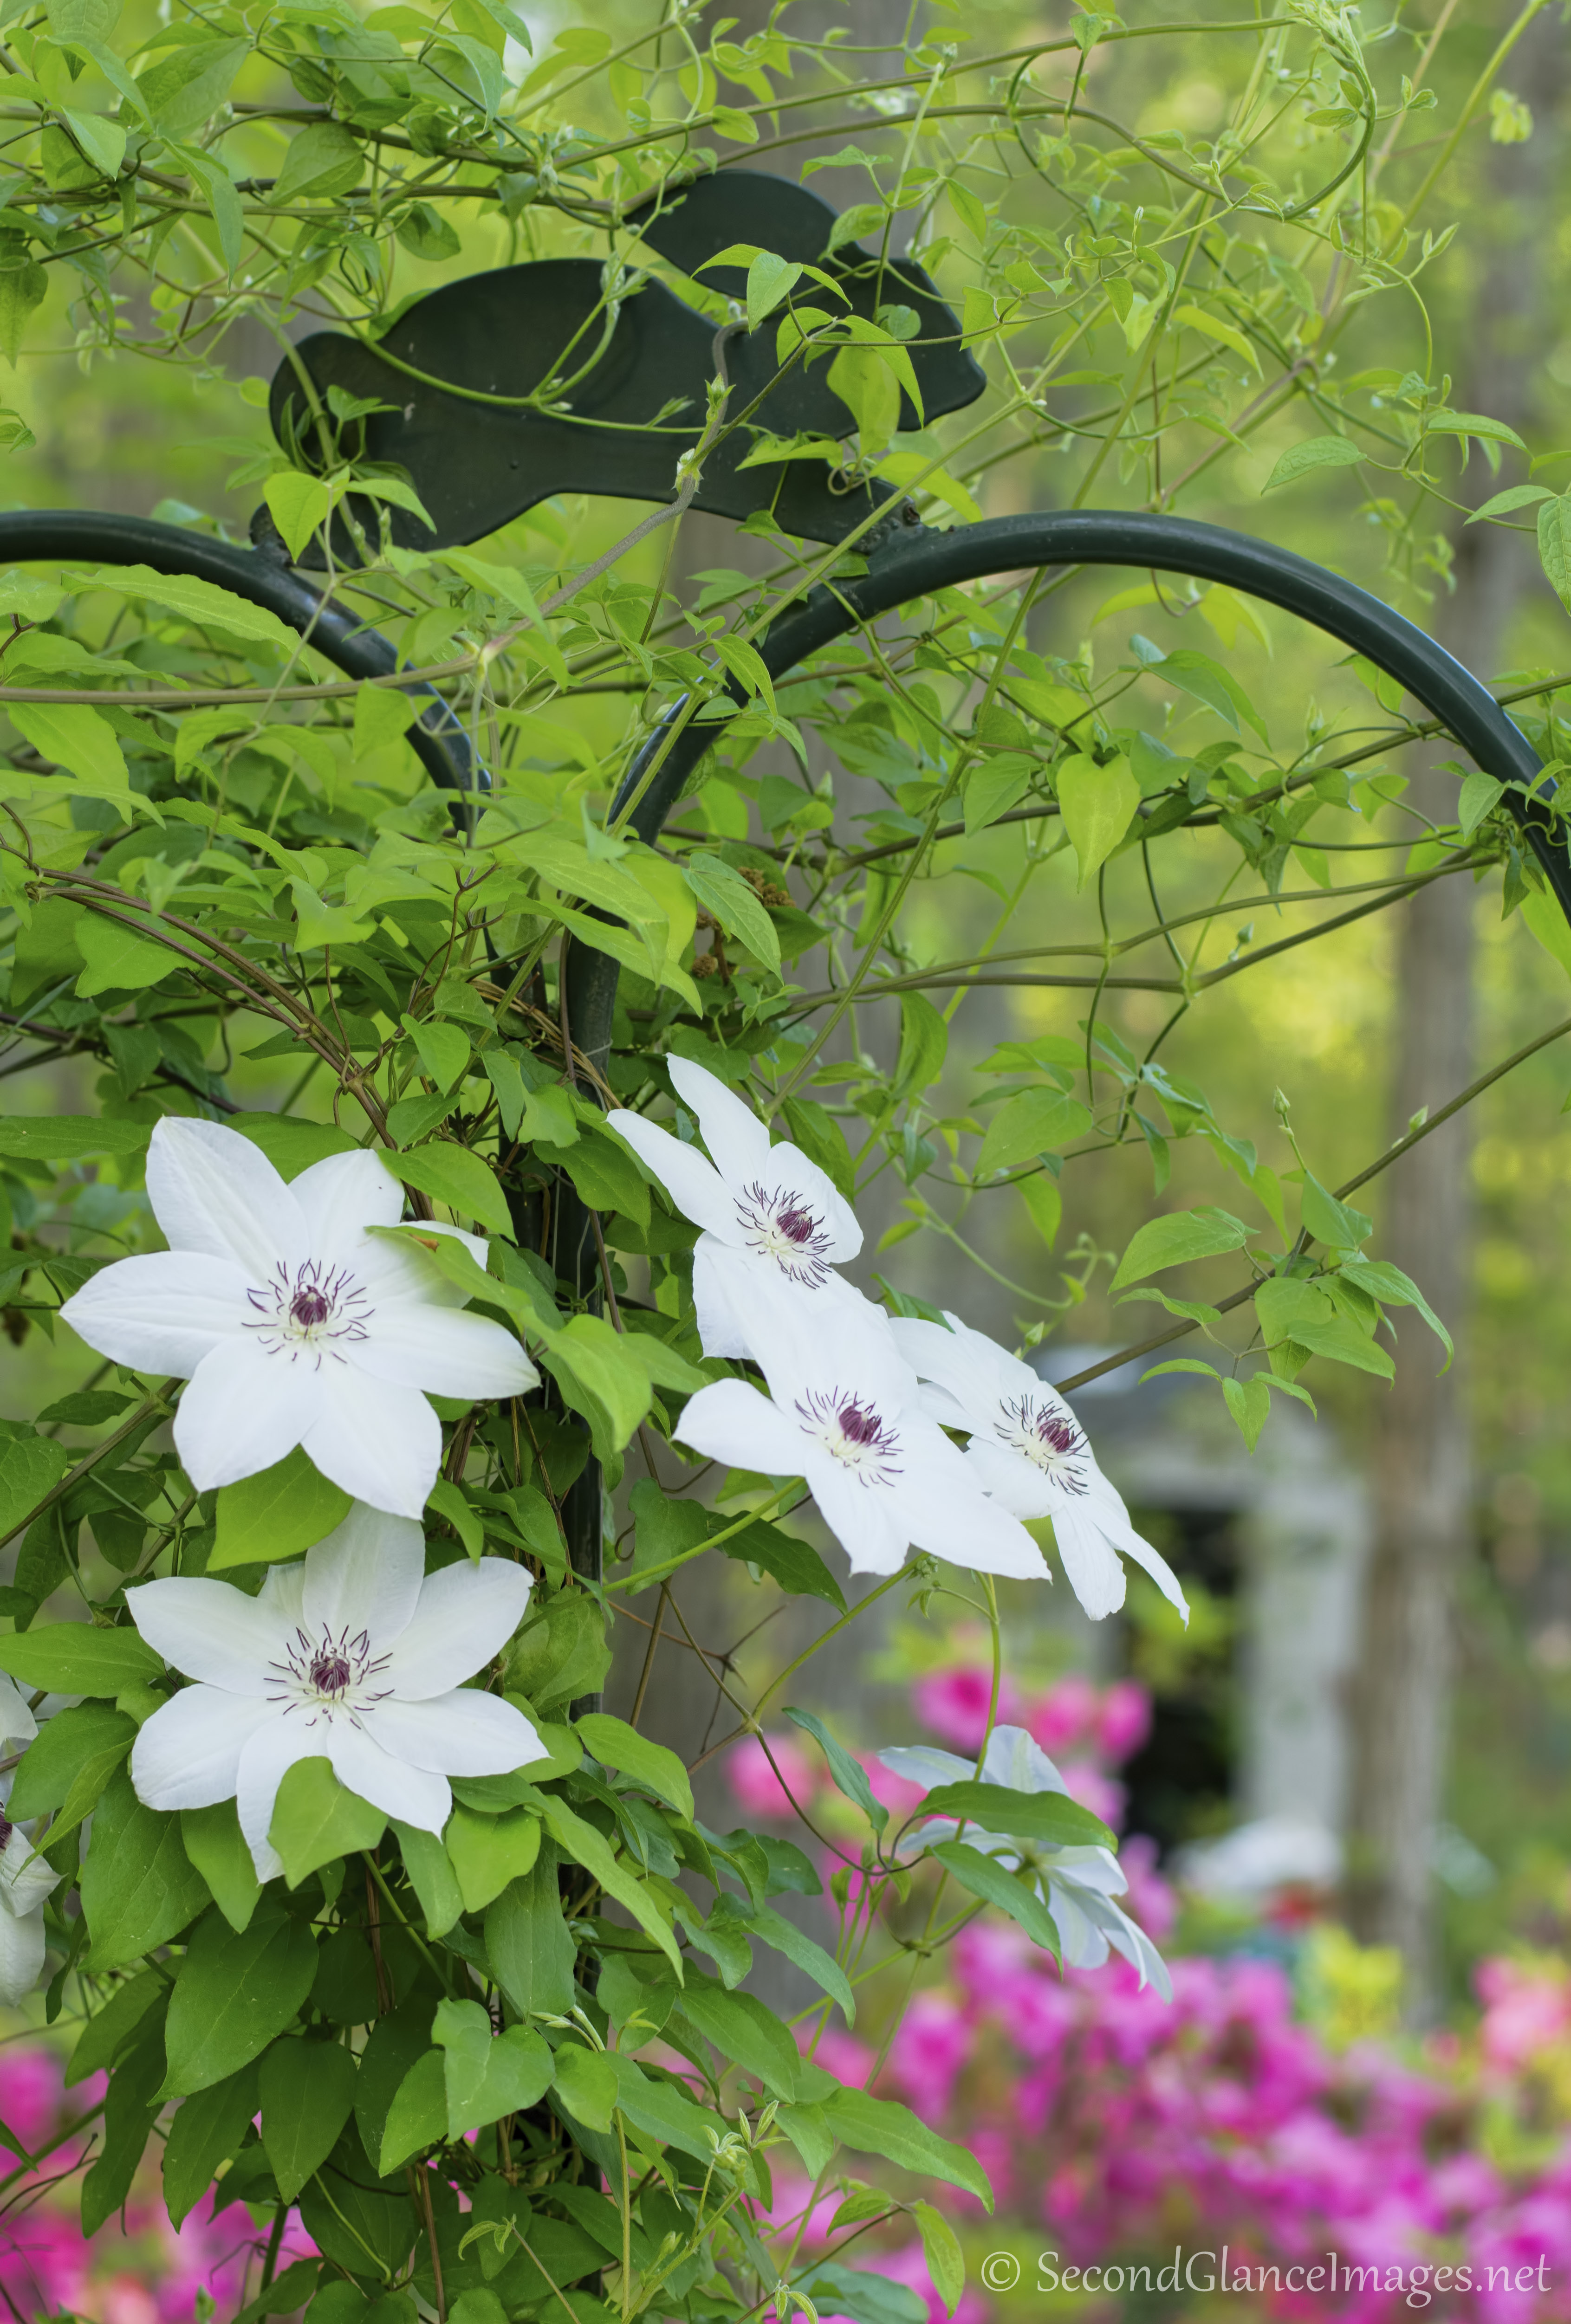 More of the white clematis ...